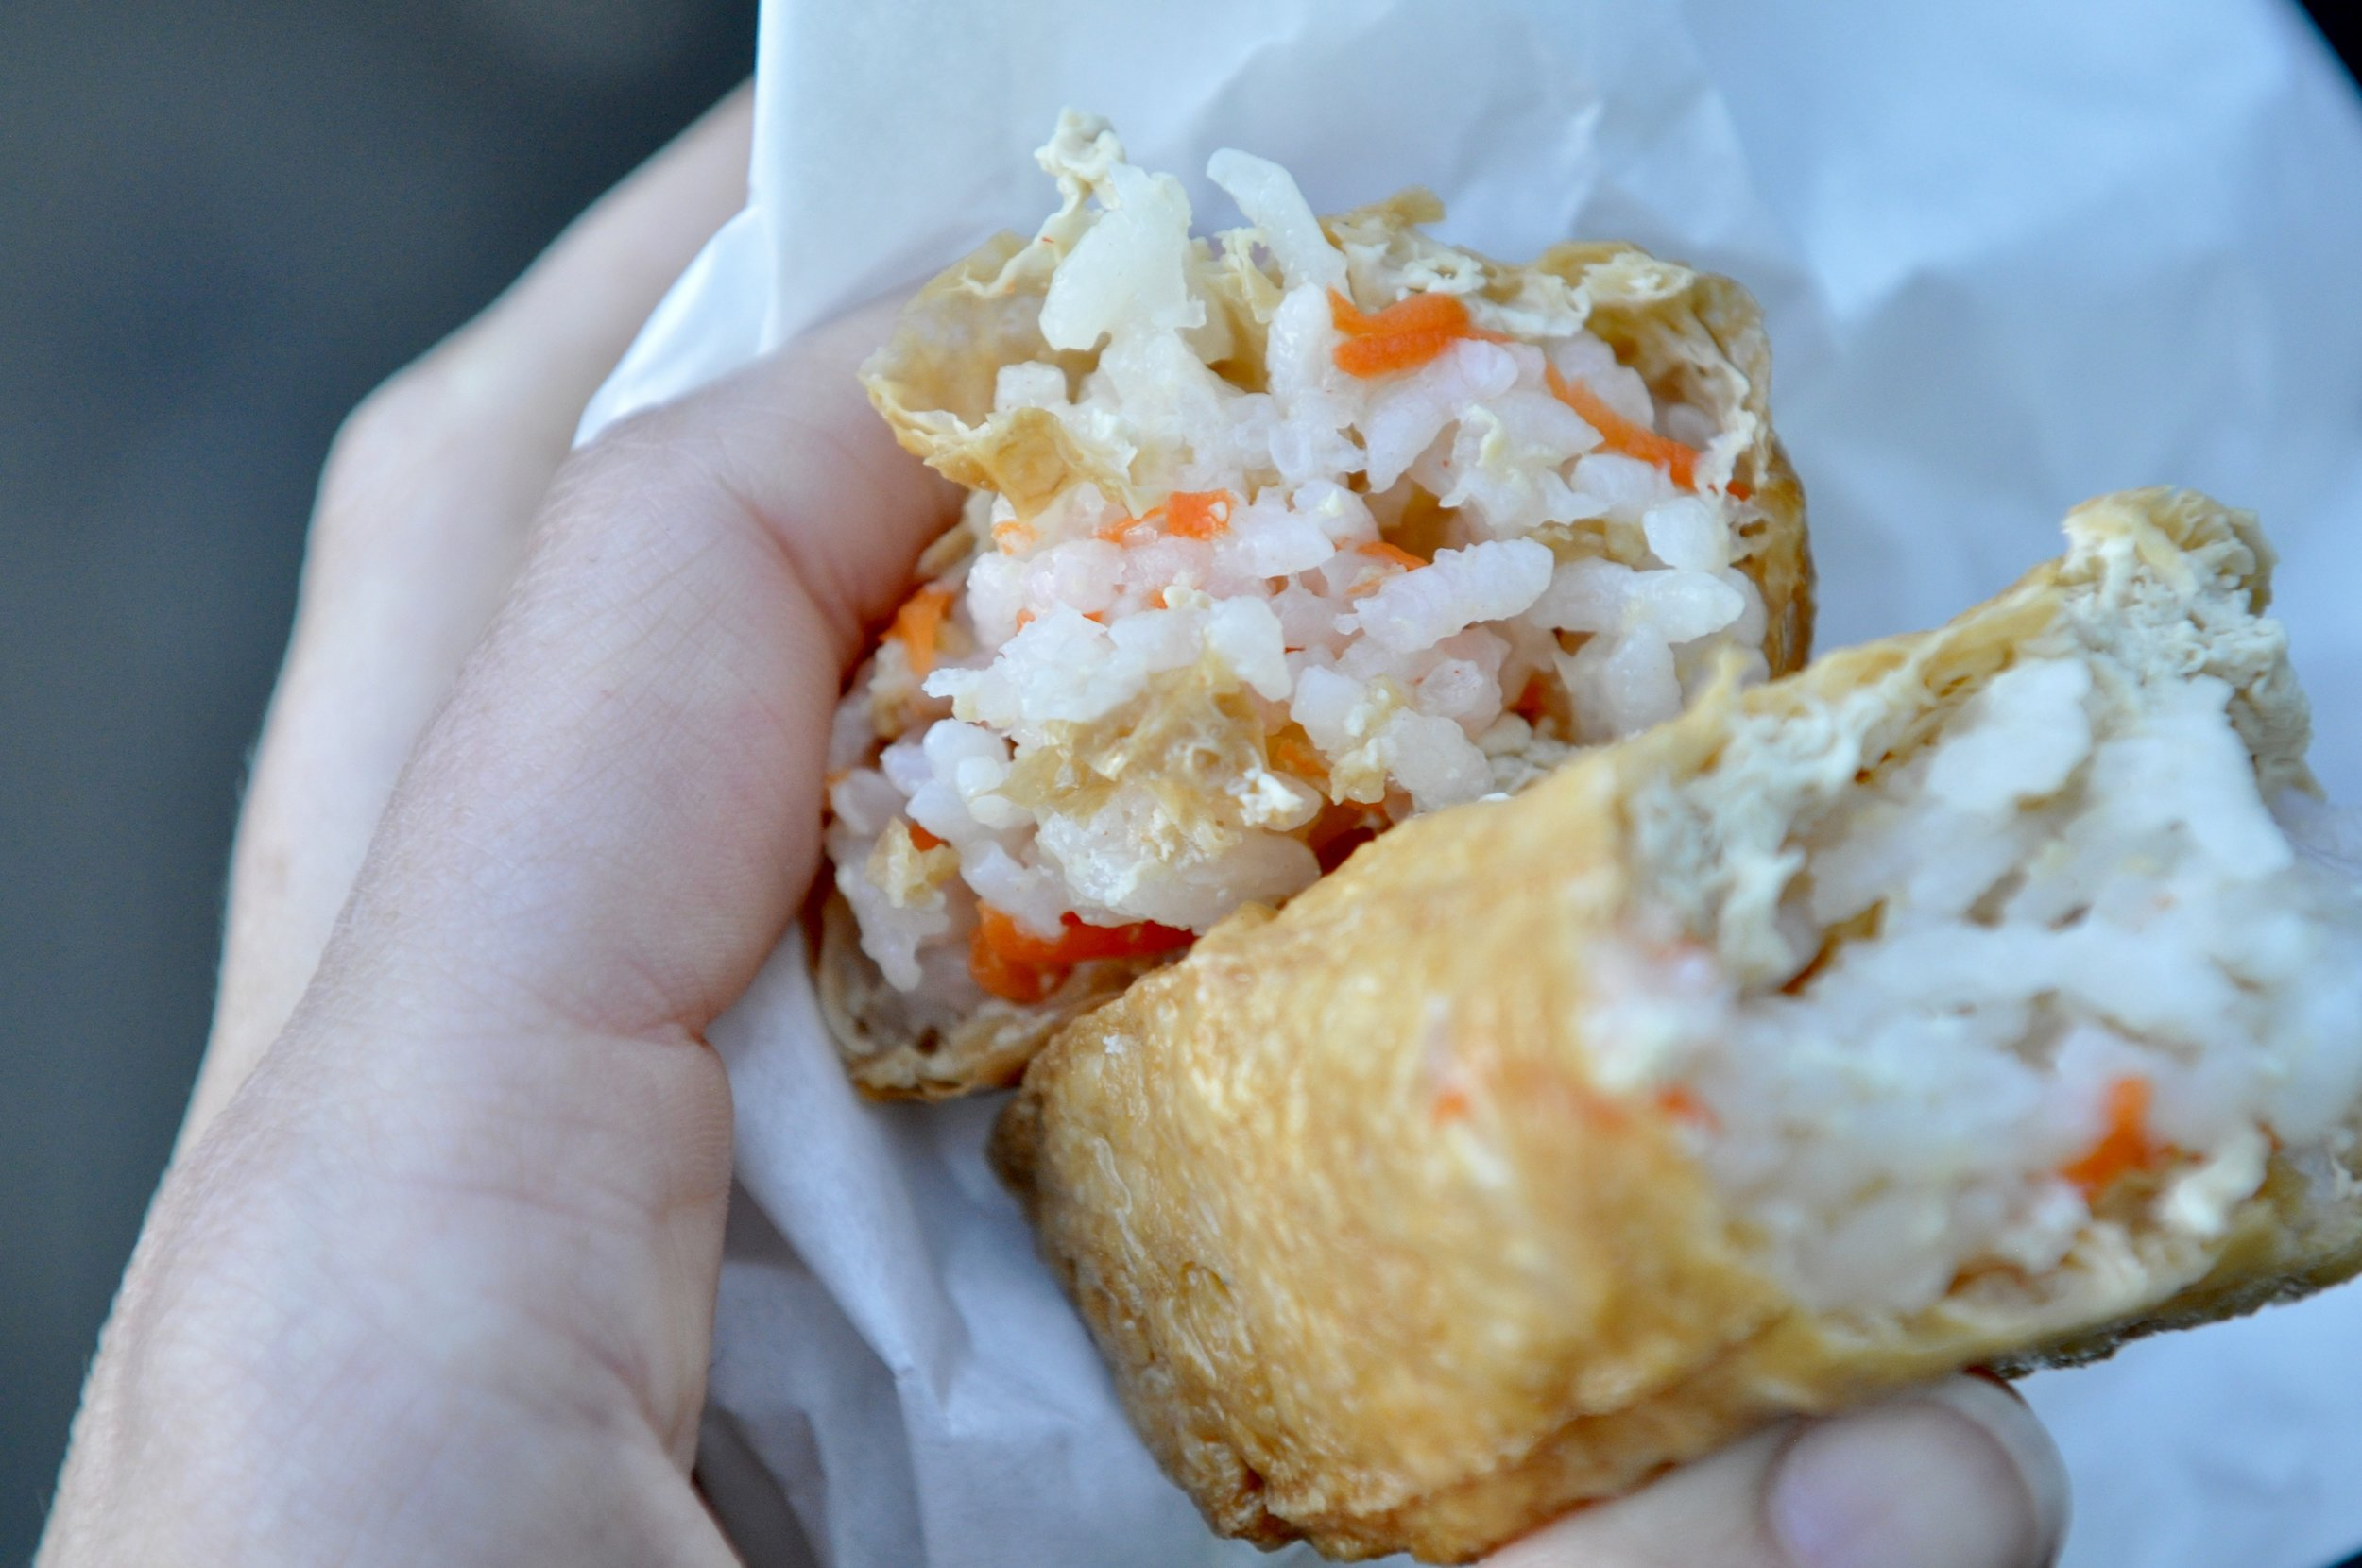 A sushi cone.It's basically fried tofu skin stuffed with white rice and egg